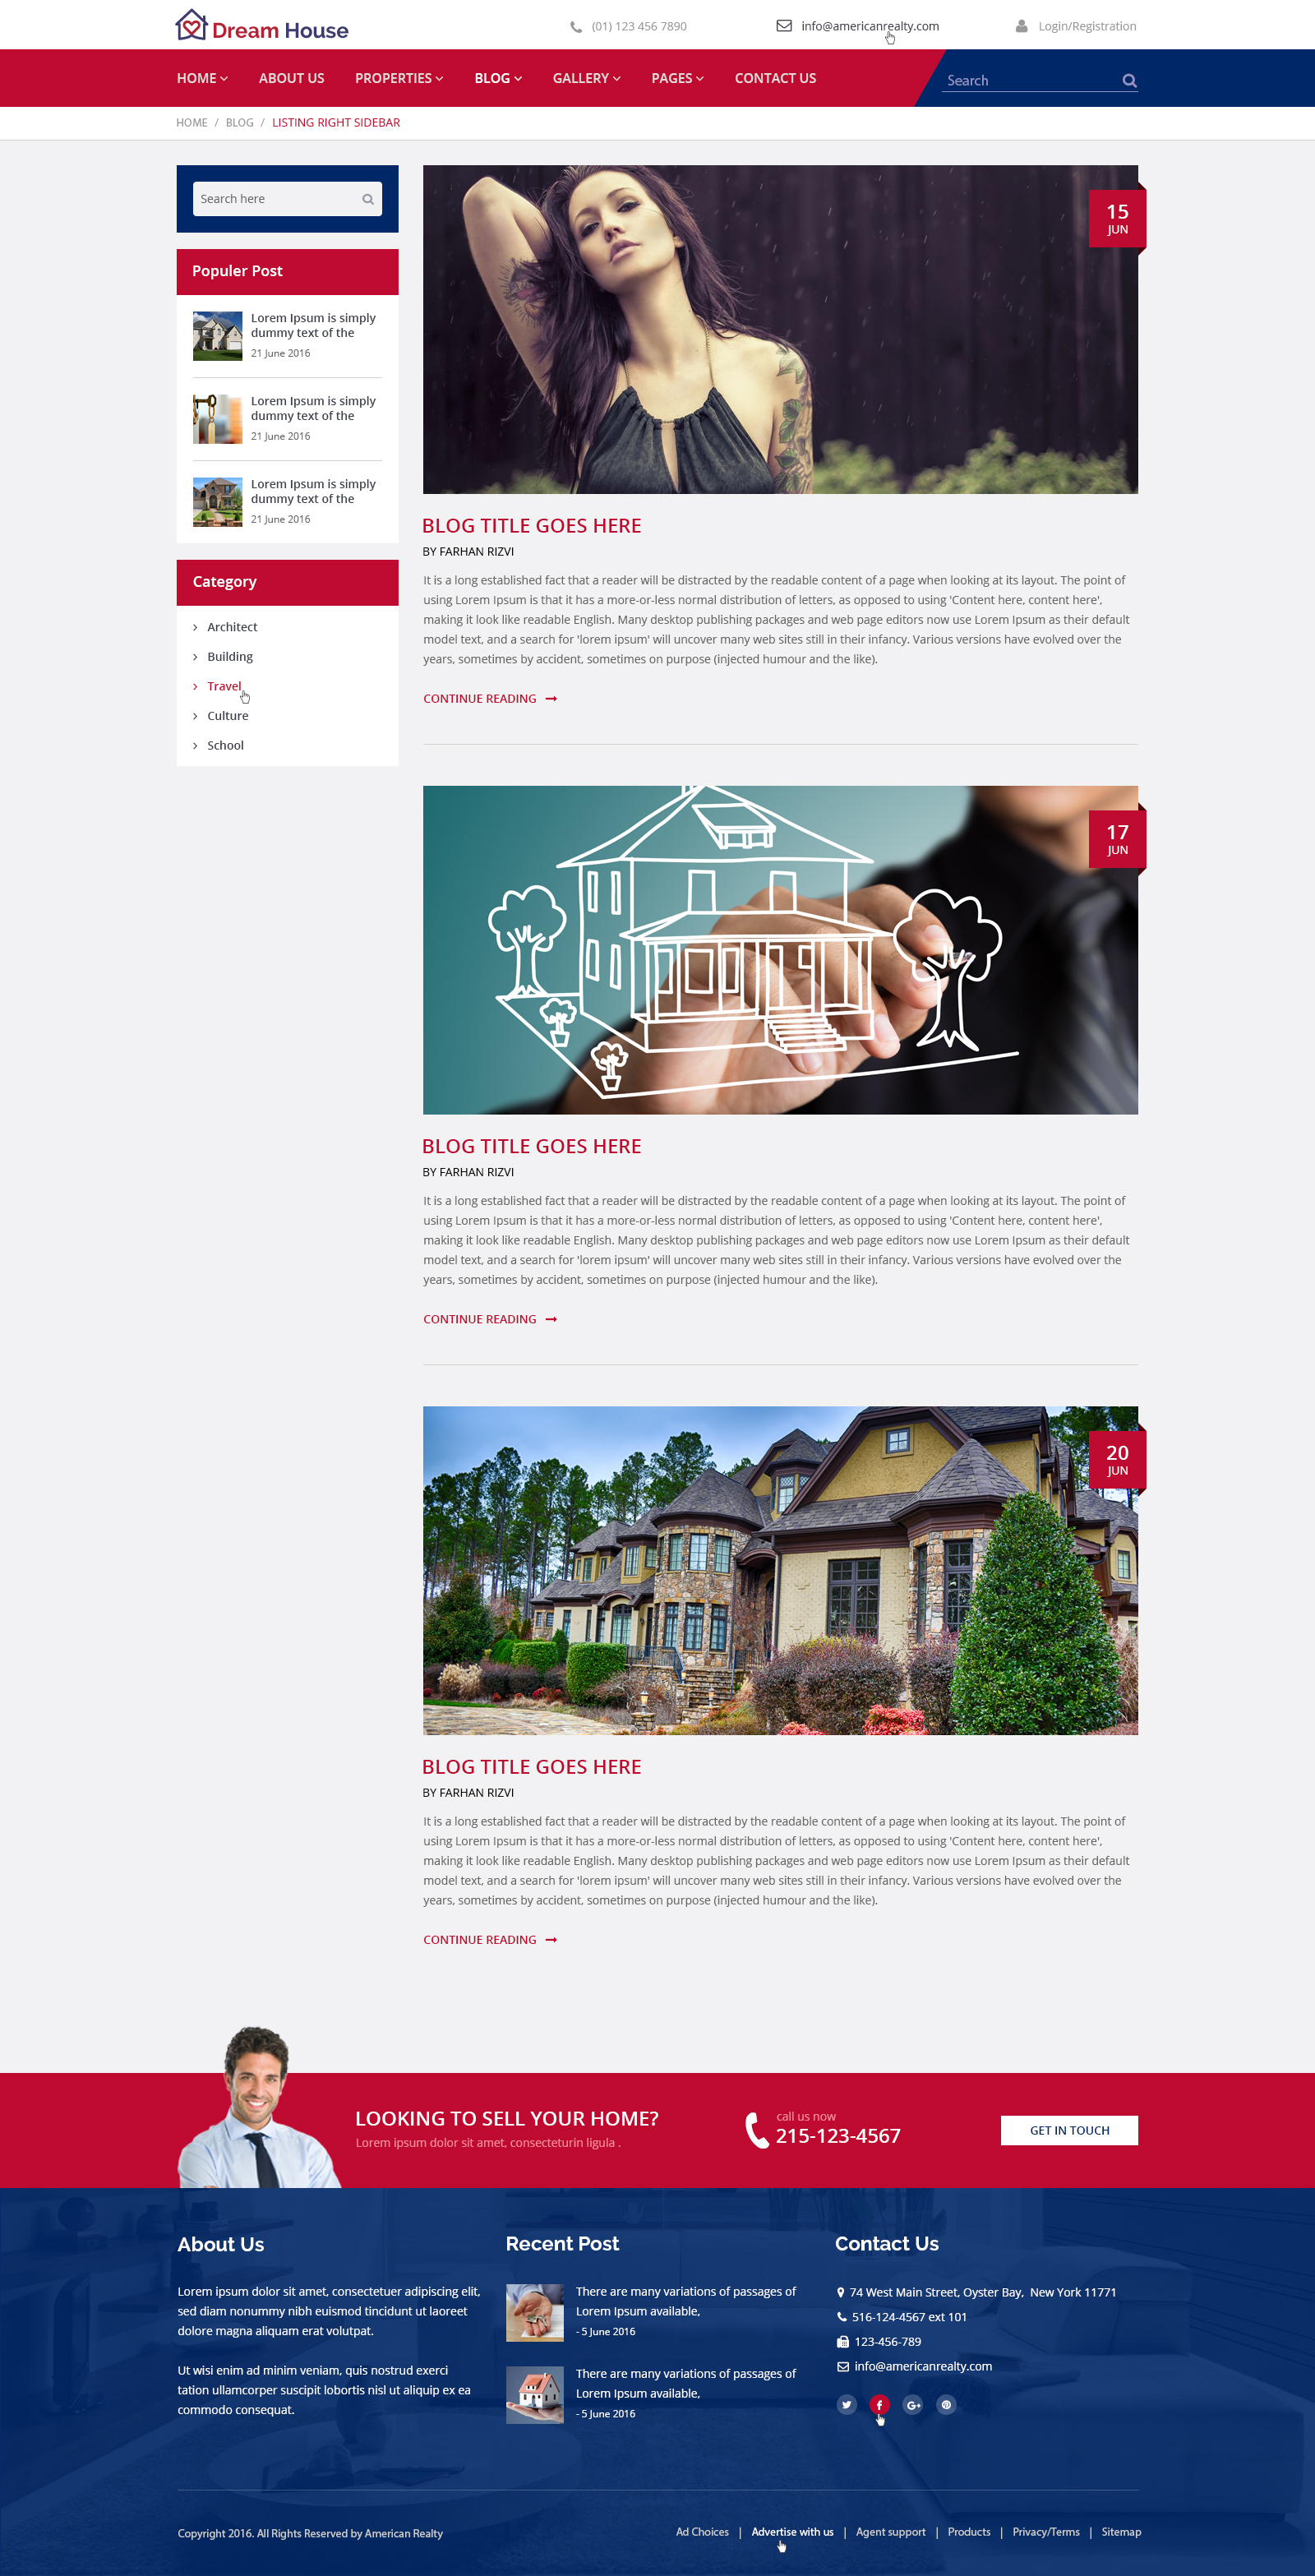 dream house real estate html template by drcsystems design dream house real estate html template